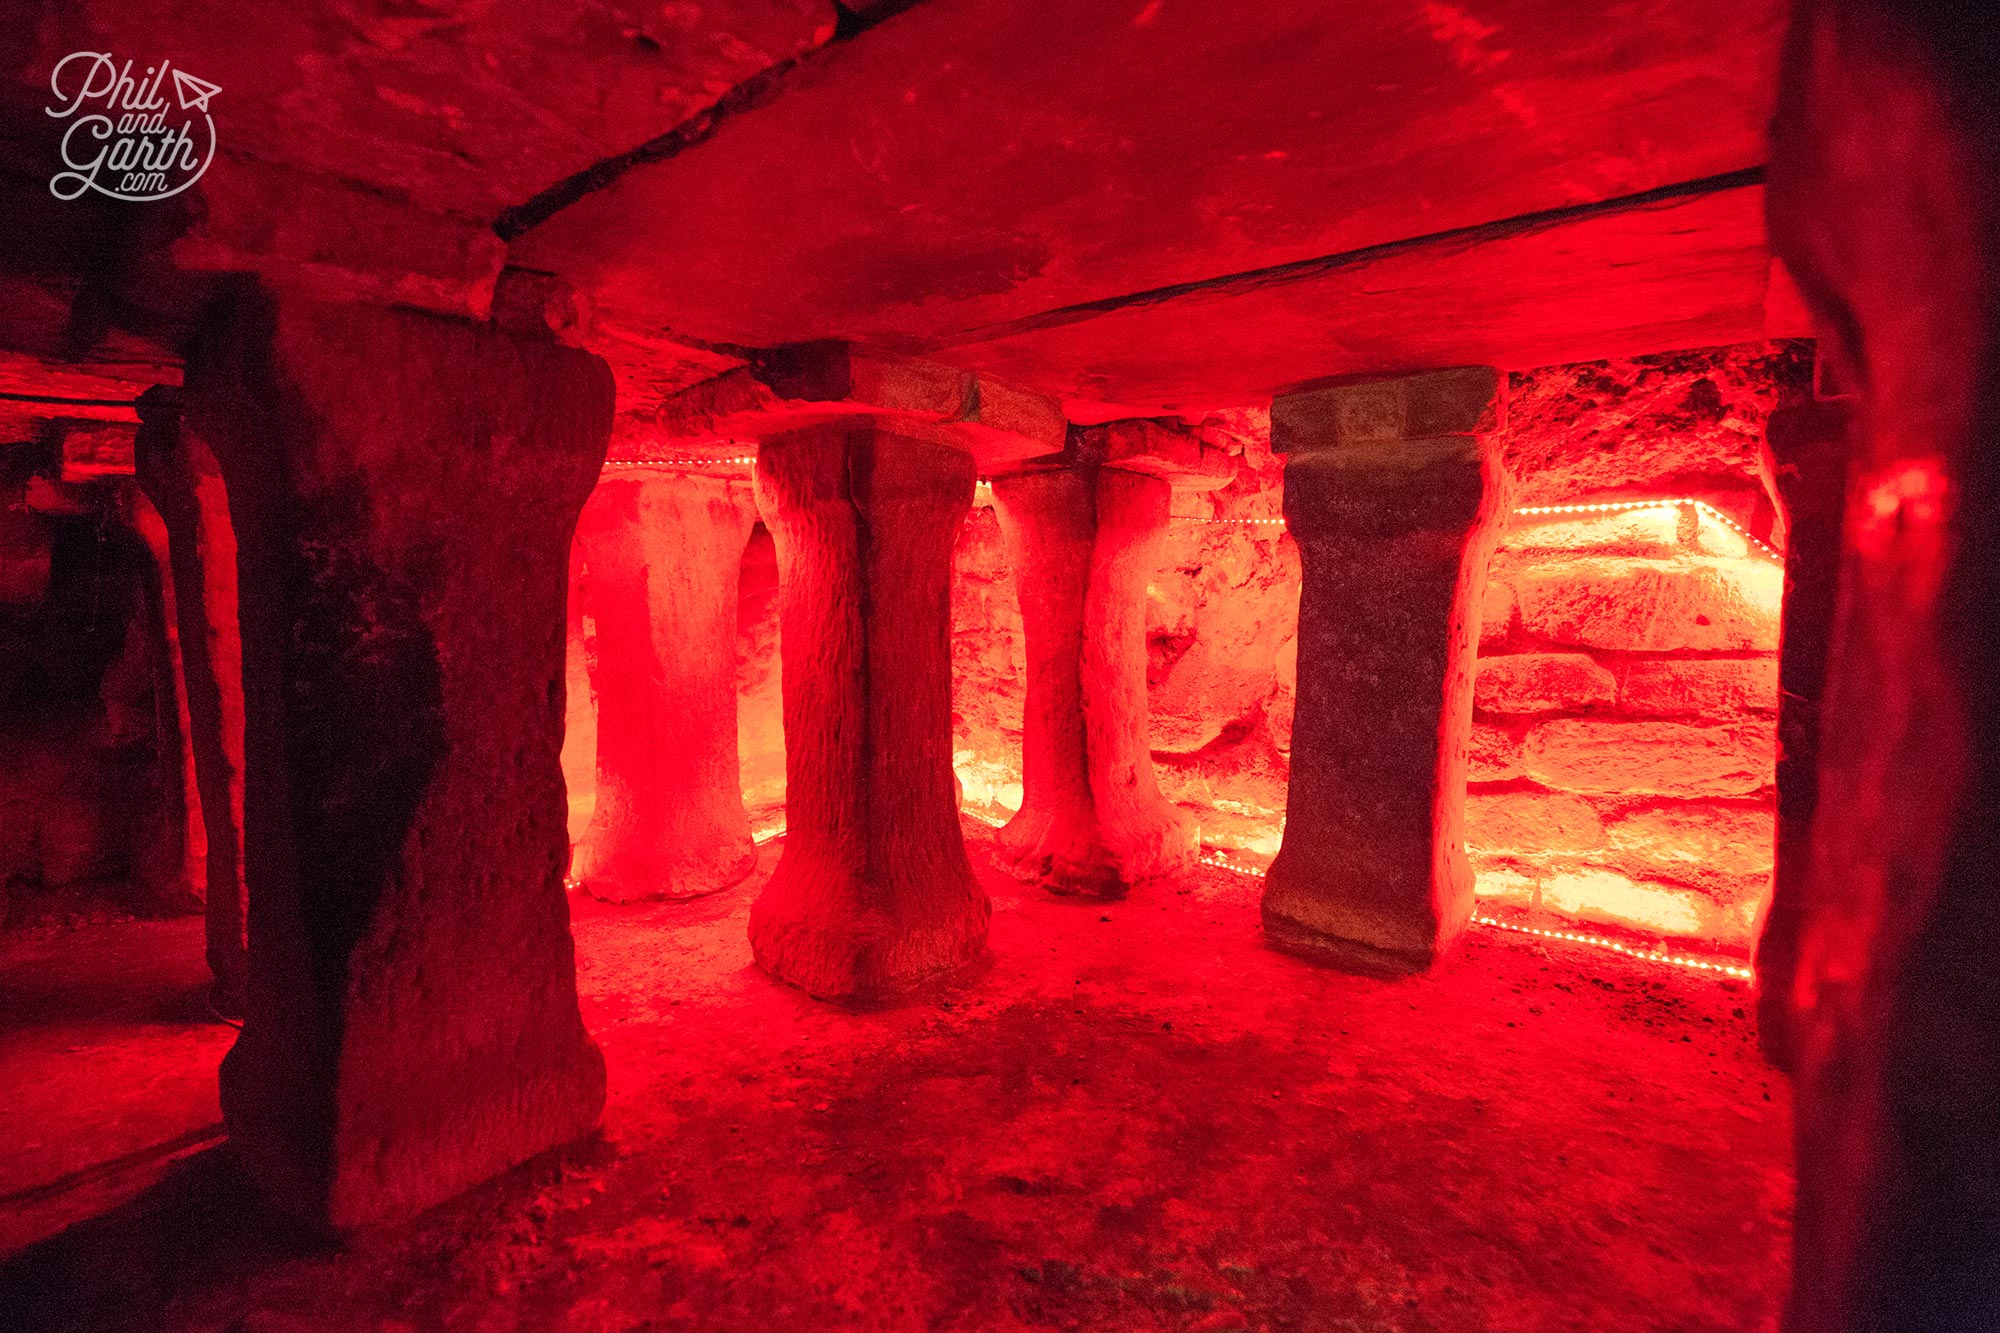 You can poke your head right inside this Roman hypocaust